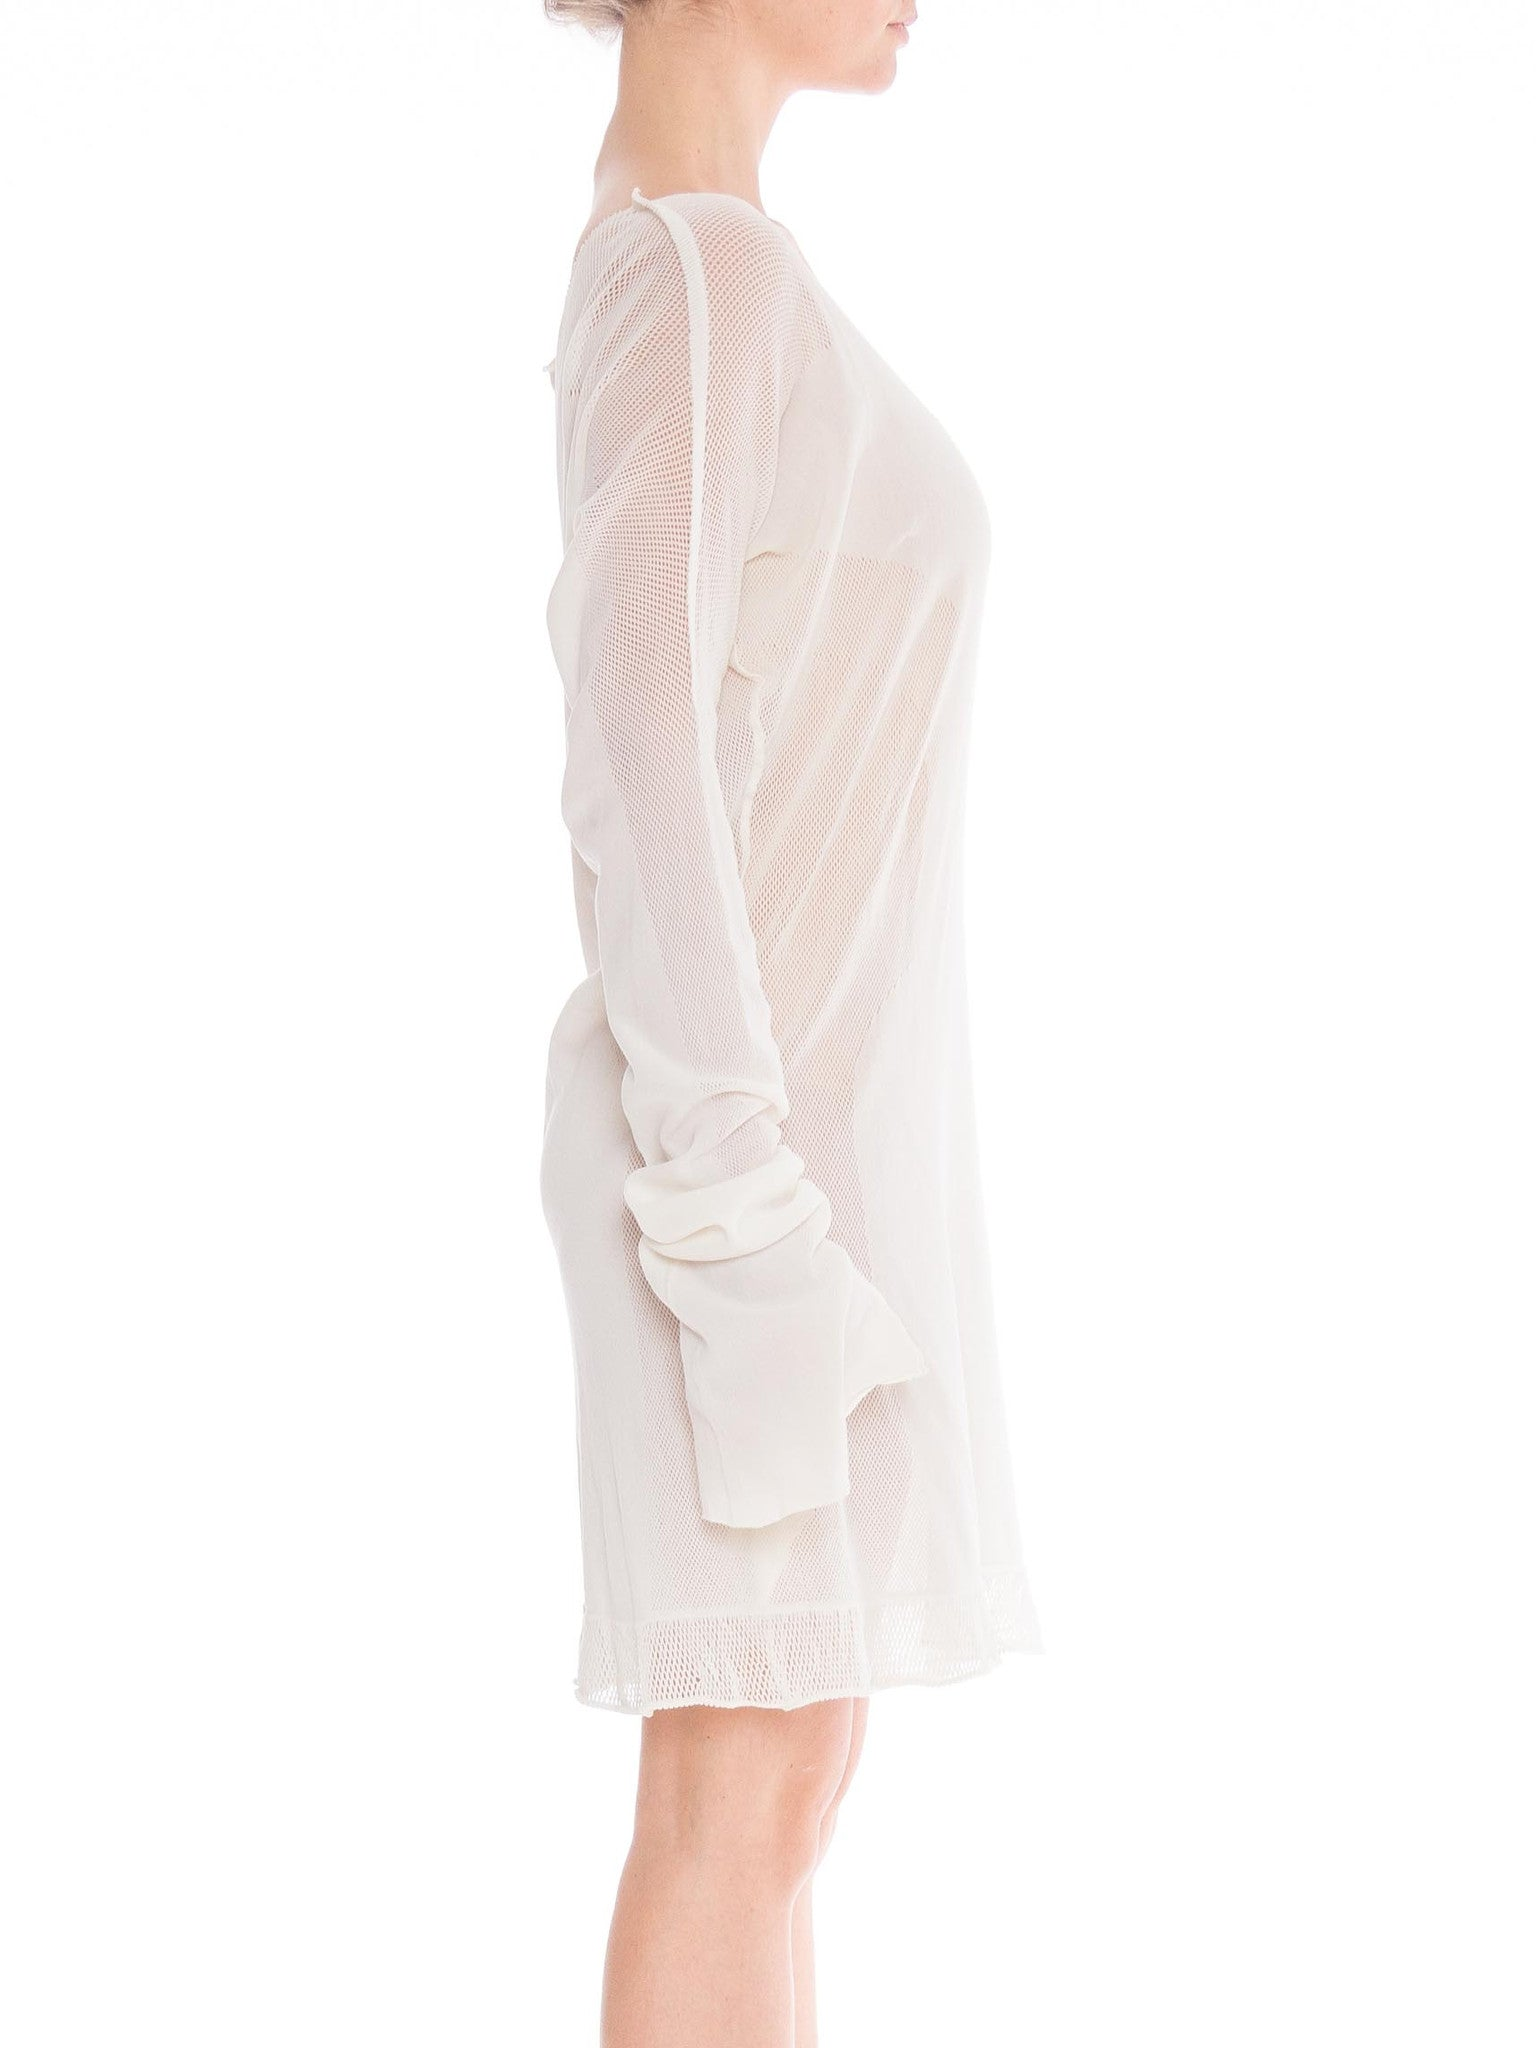 1990S  ISSEY MIYAKE White Cotton Engineered Mesh Circular Knit Dress With Pockets